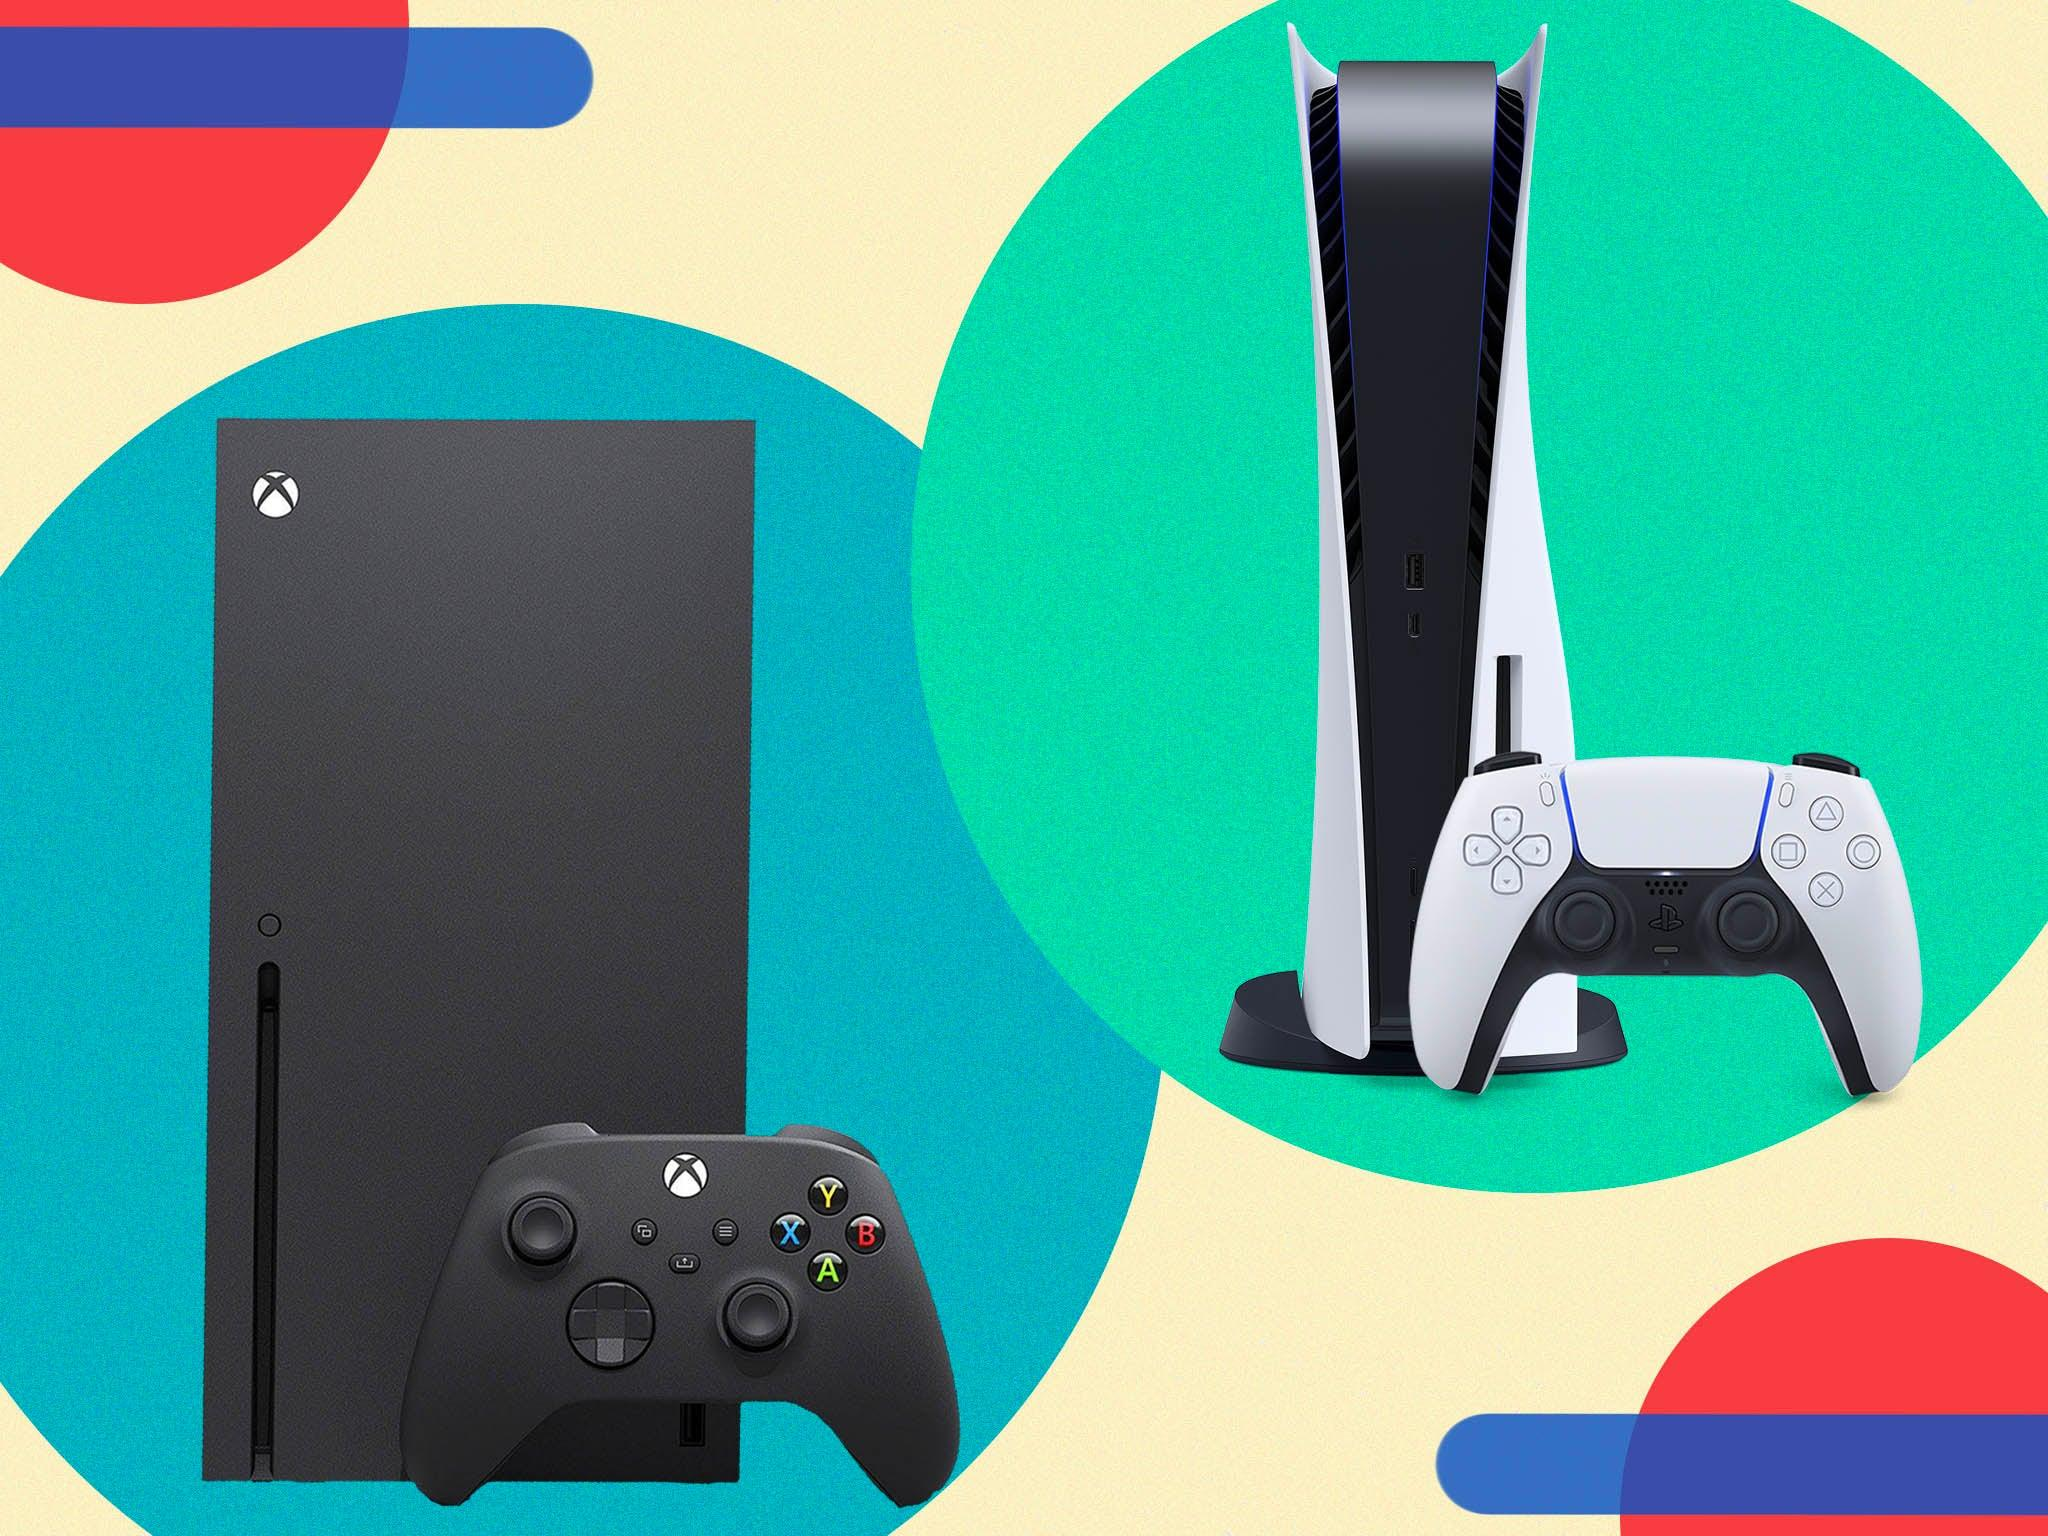 Gaming consoles set to earn an estimated $45 billion this year Thumbnail